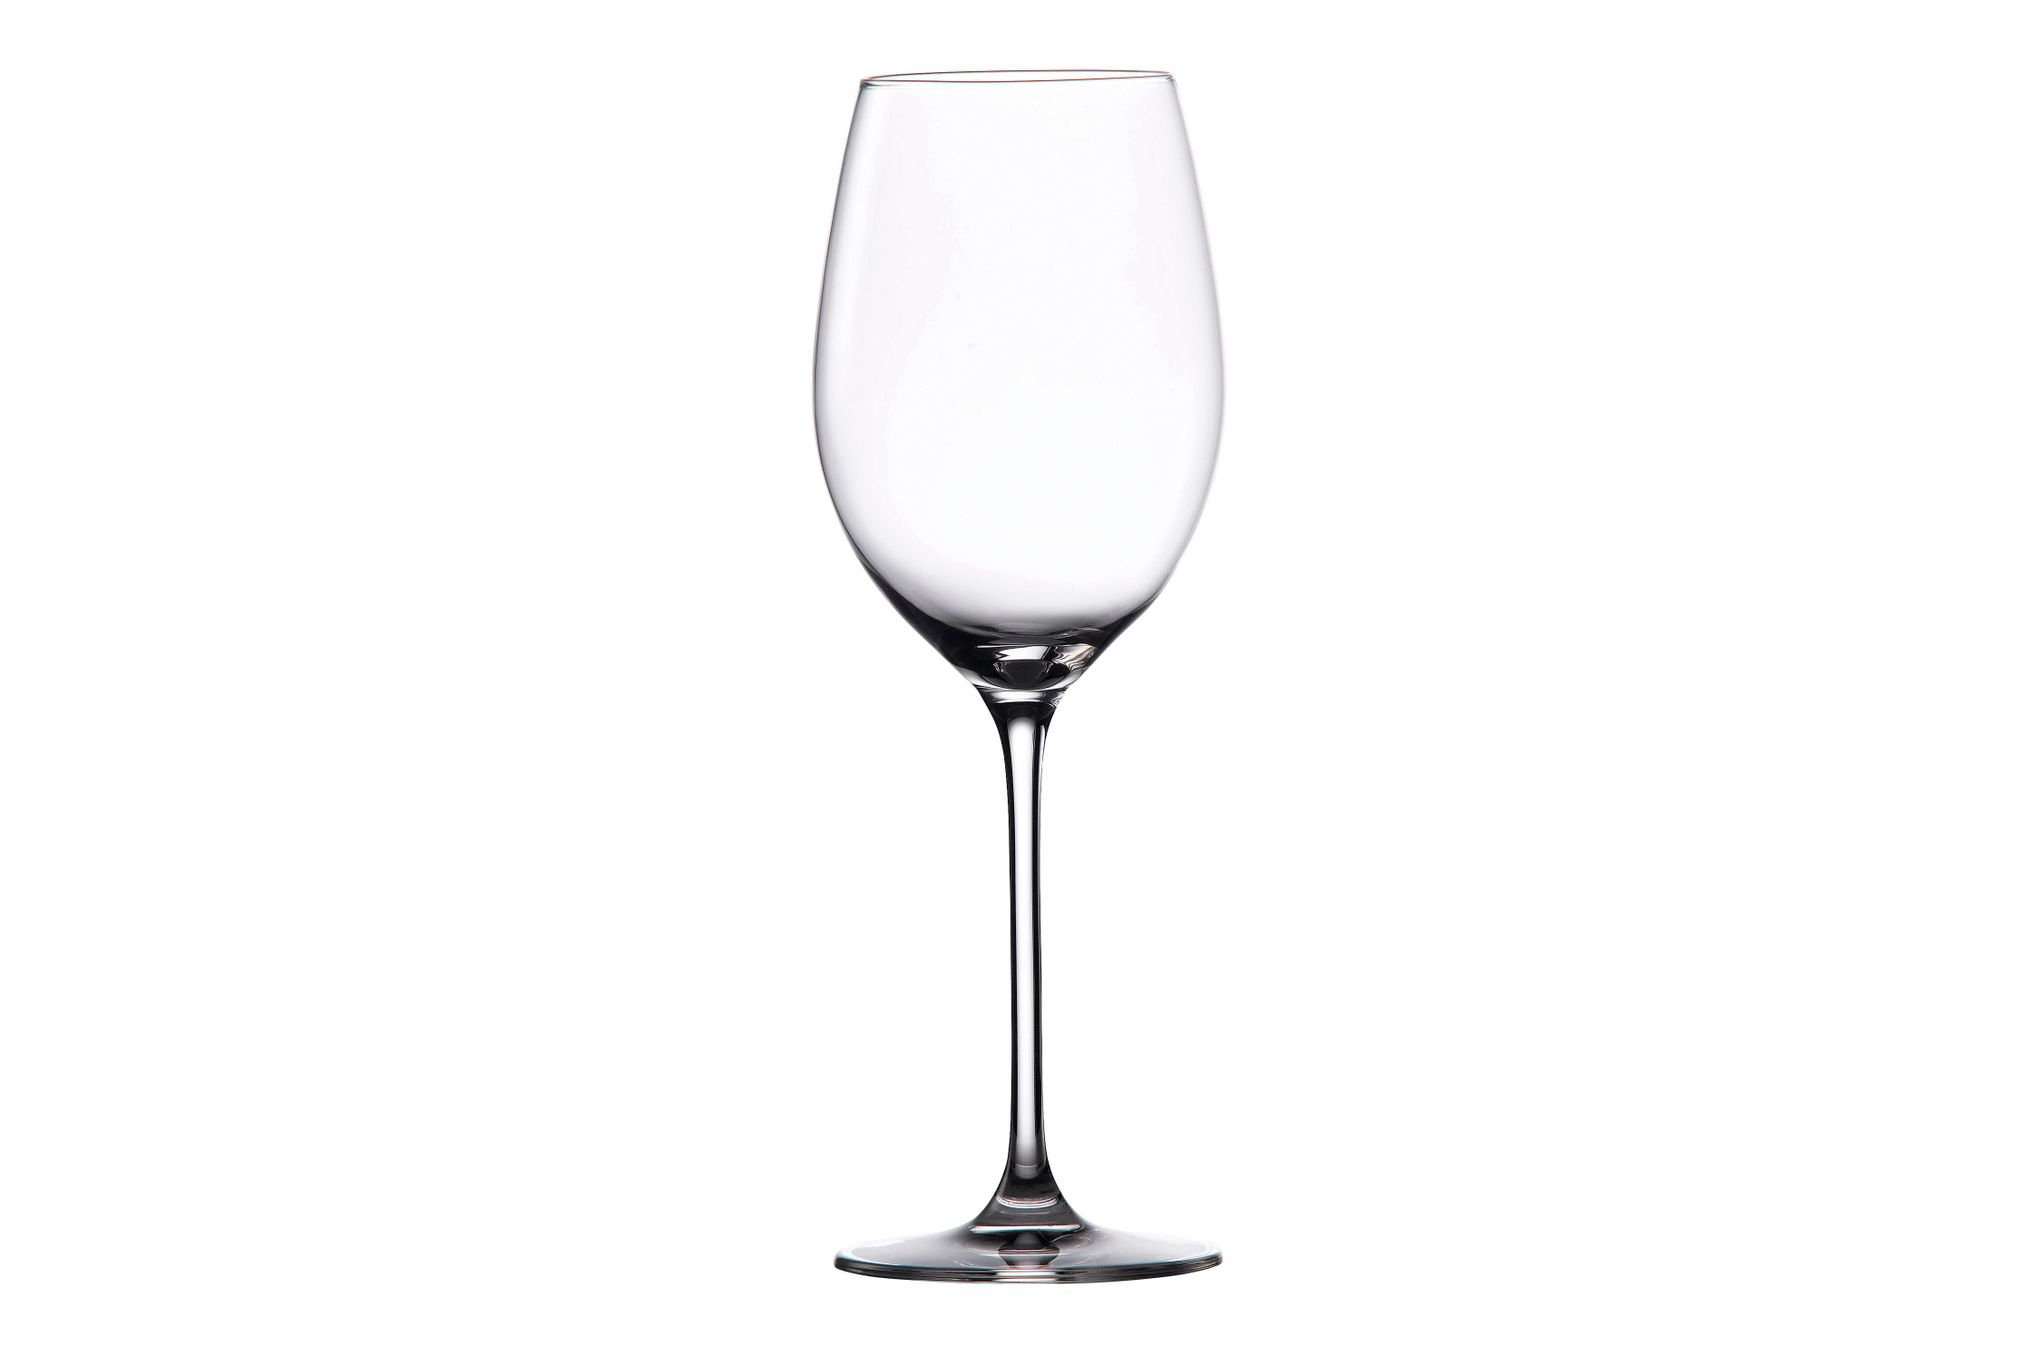 Waterford Marquis Moments Set of 4 White Wine Glasses 380ml thumb 3